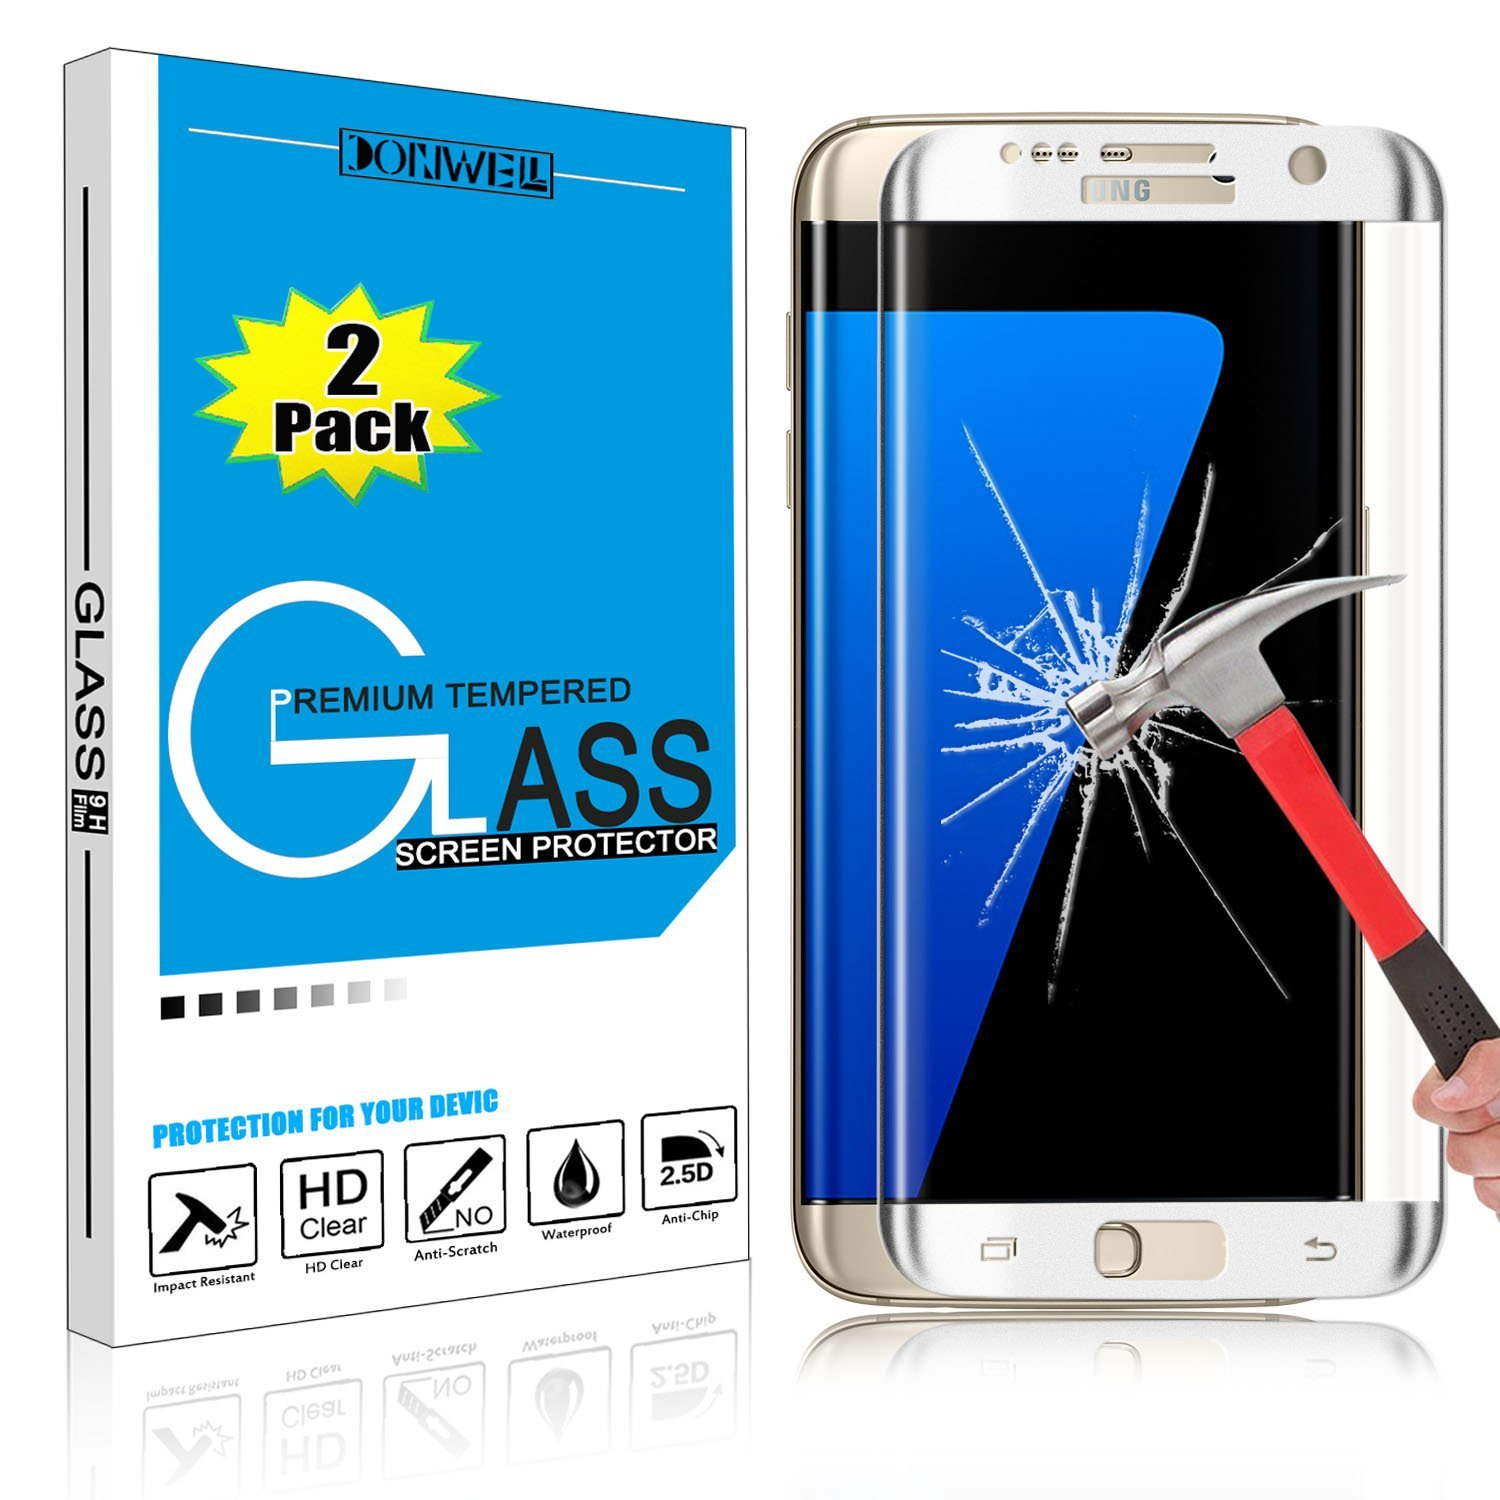 Samsung Galaxy S7 Screen Protector, DONWELL Full Screen Coverage Tempered Glass Screen Protector for Galaxy S7 / SM-G930 [2.5 D Curved] [Edge to Edge] [HD Clear] [Bubble Free] [2 PACK SILVER]